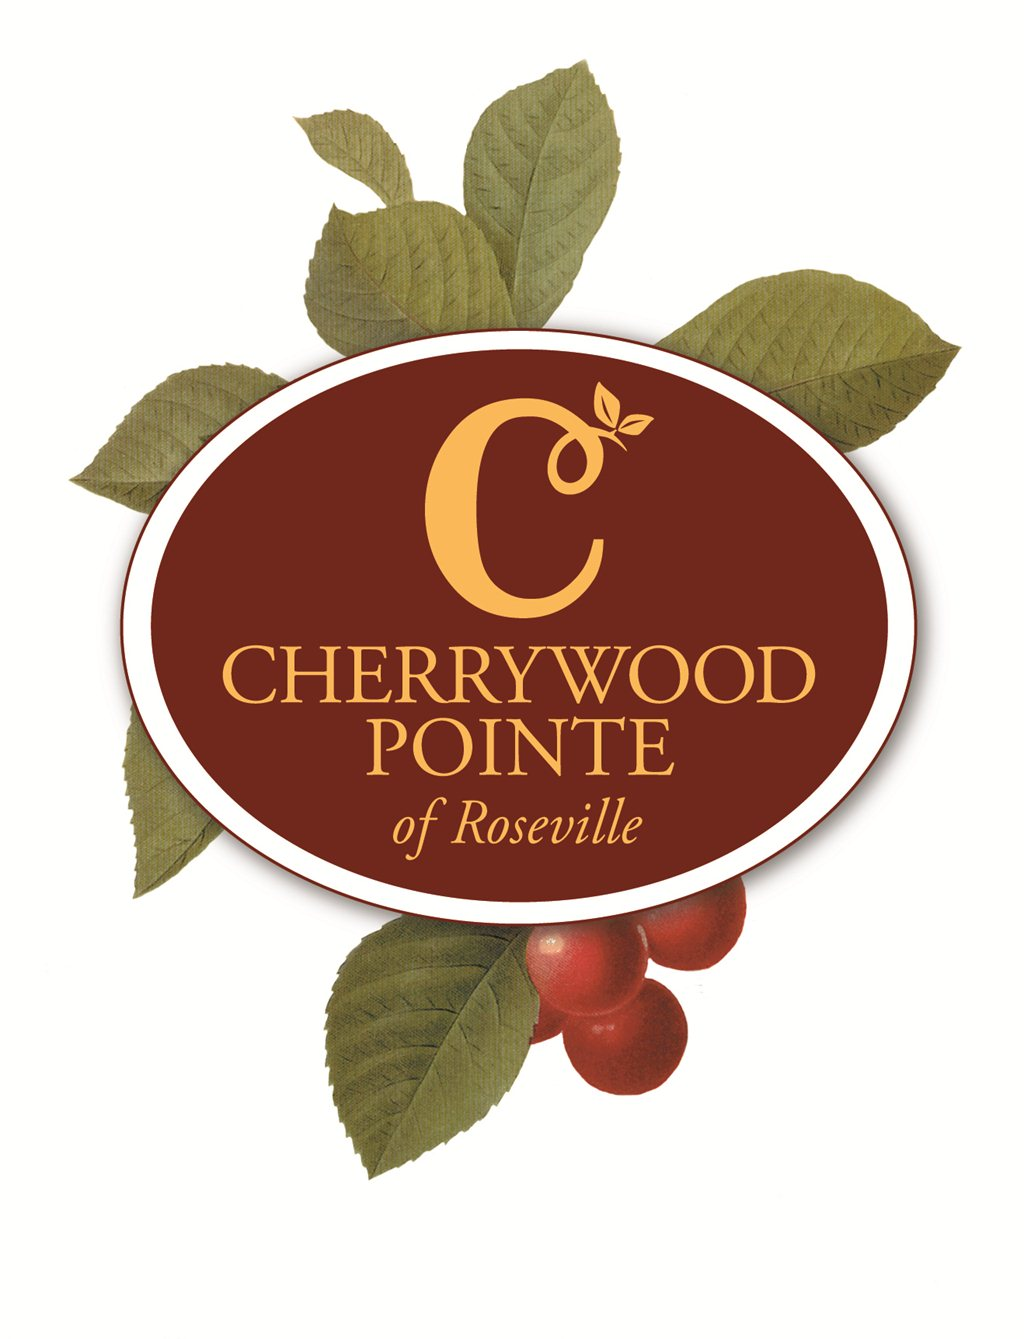 Cherrywood Pointe at Roseville, MN